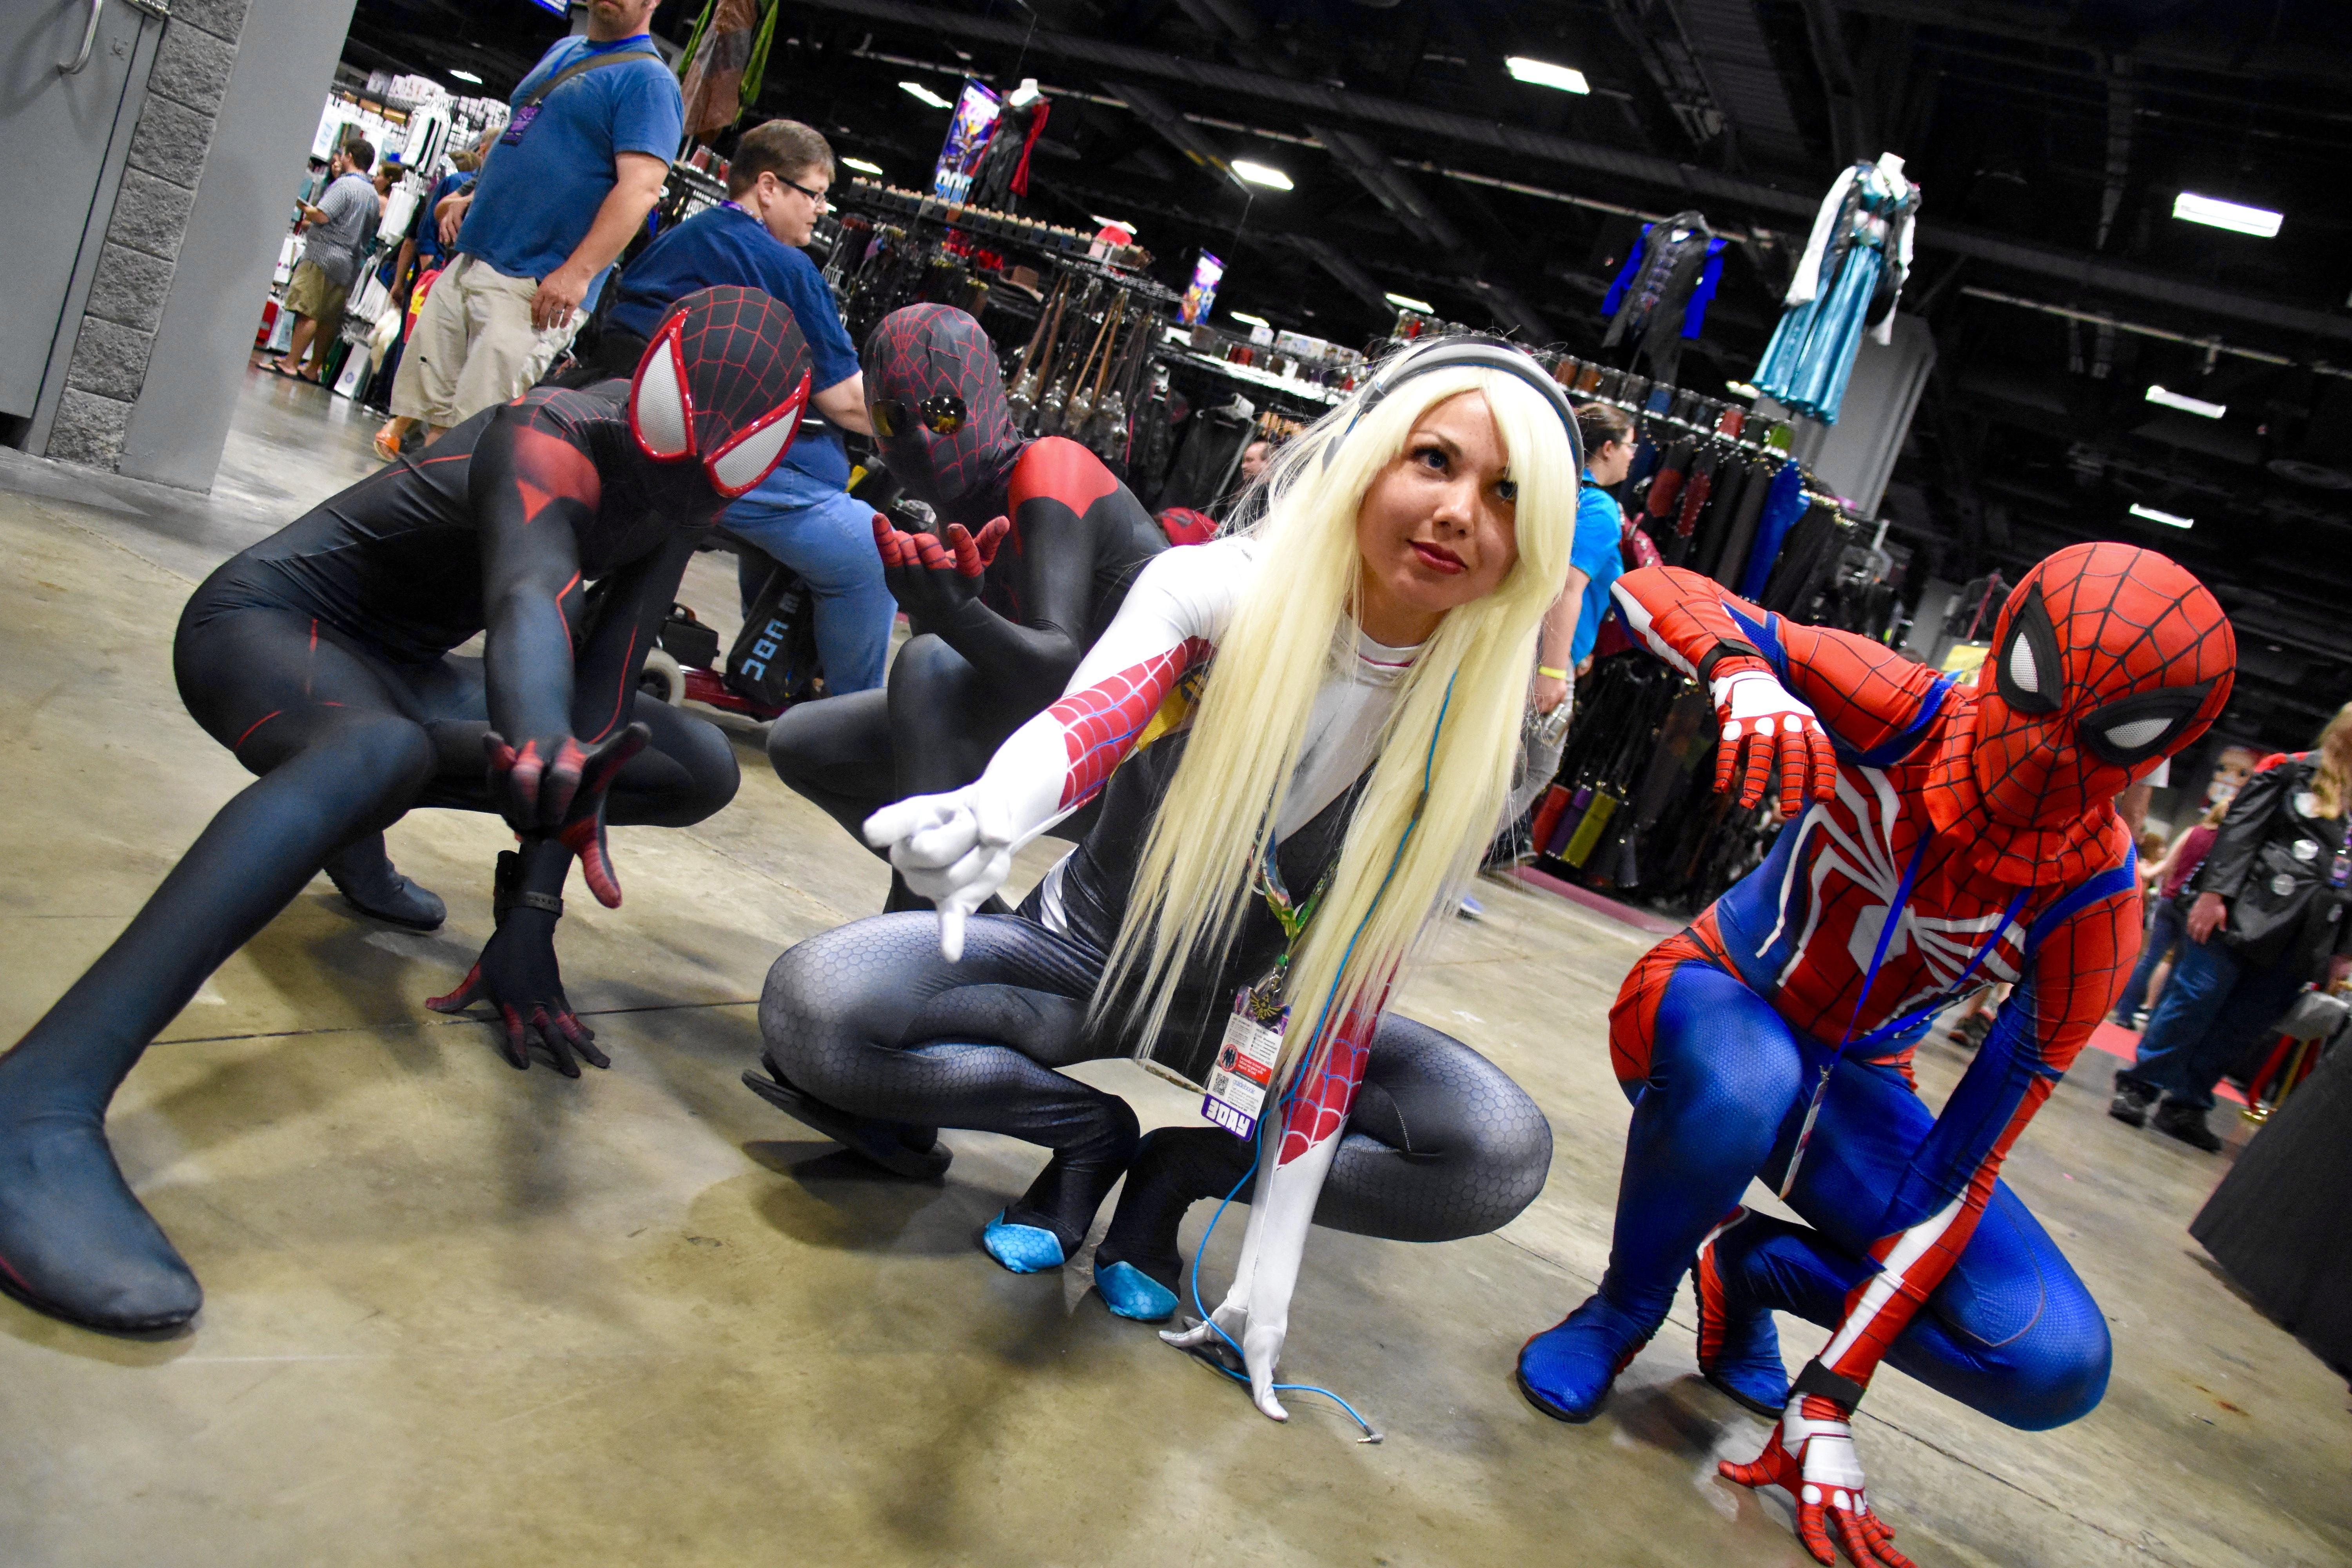 Nerds and geeks alike joined forces at Awesome Con, a three-day event celebrating all forms of pop culture, and just about all of them came in costume. Here are our favorite cosplays of 2017, from the funny to the extraordinary. (Image: Marni Rochkind)